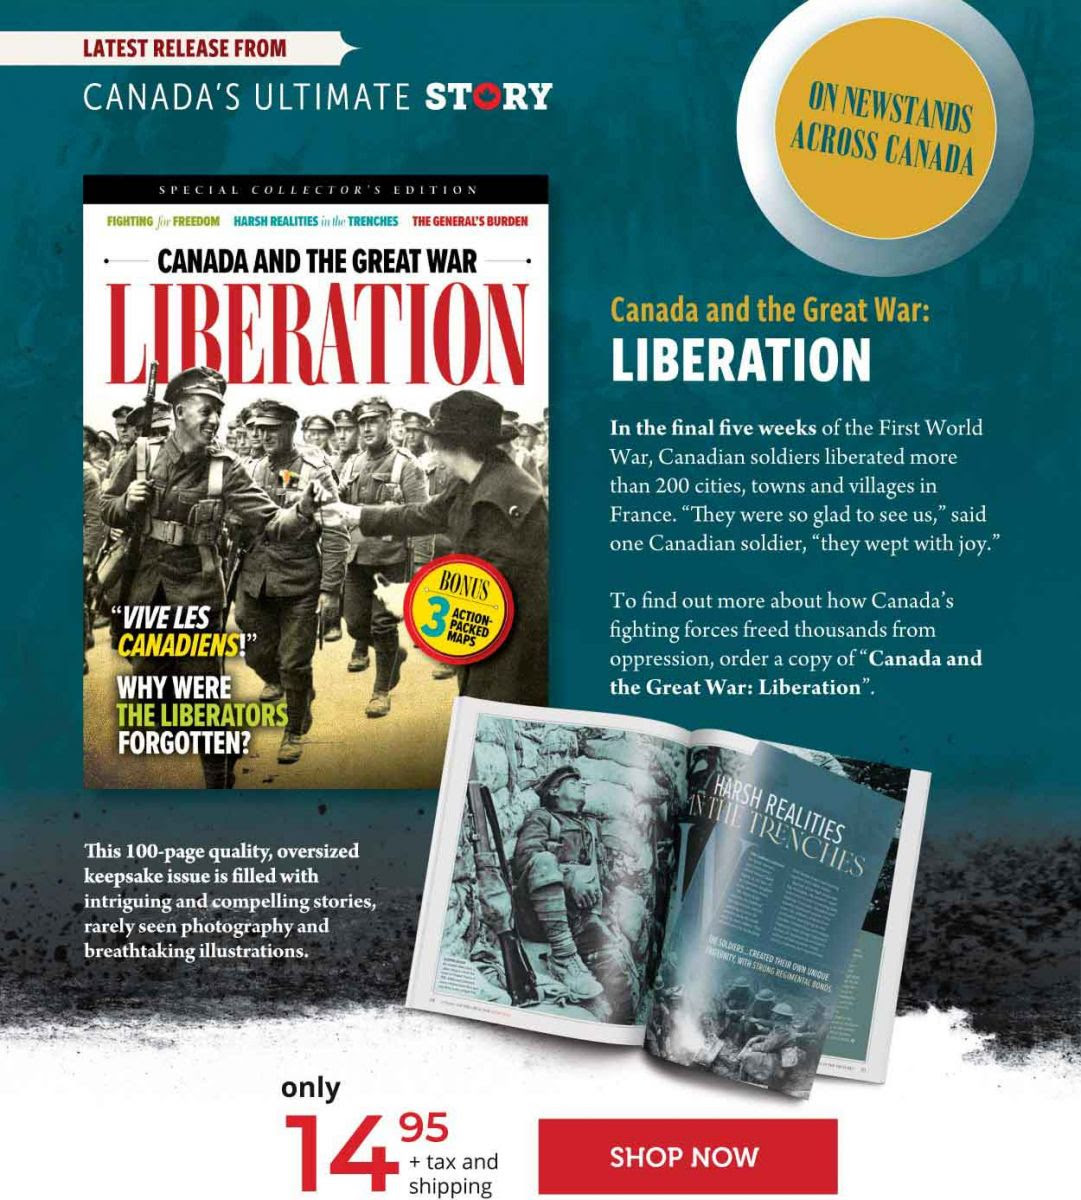 Canada and the Great War: Liberation